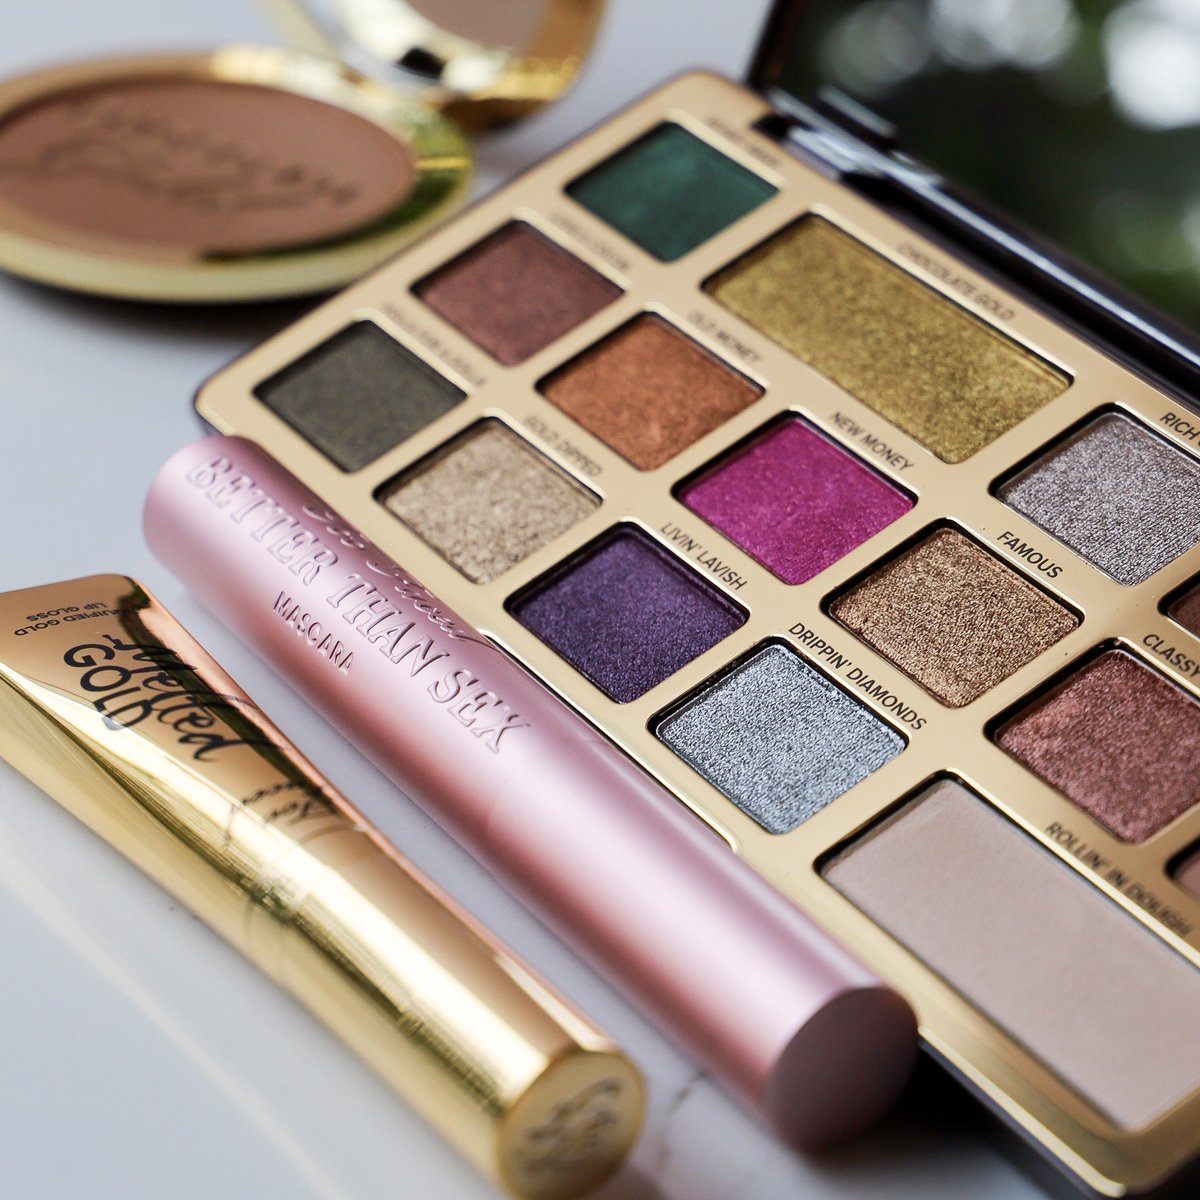 Too faced косметика где купить косметика catrice купить в москве